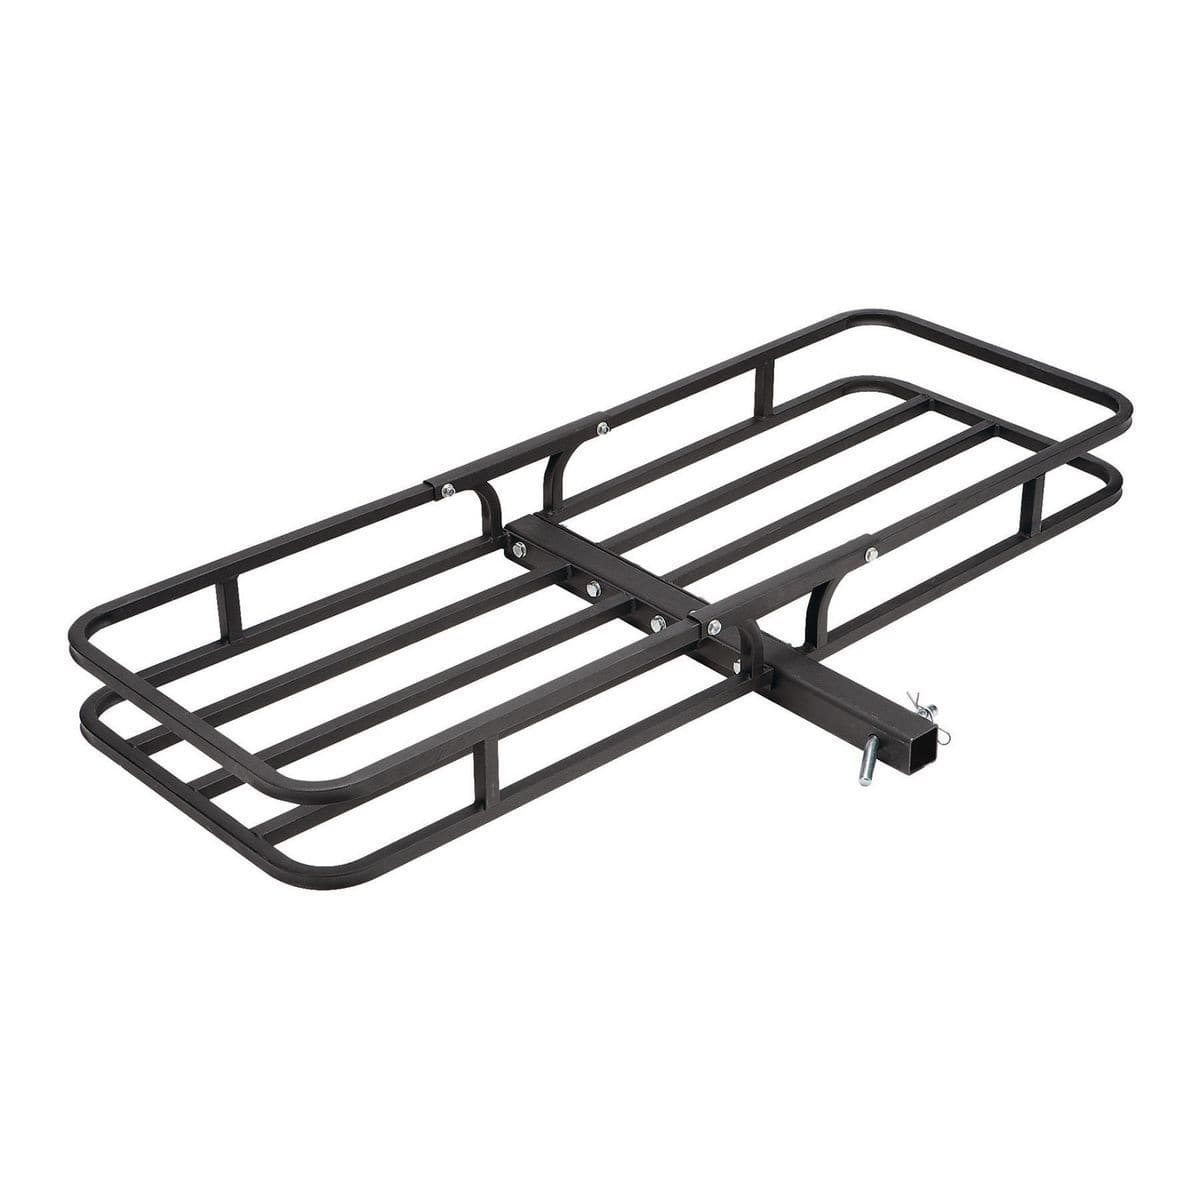 HAUL-MASTER 500 lb. Steel Cargo Carrier for $39.99 at Harbor Freight